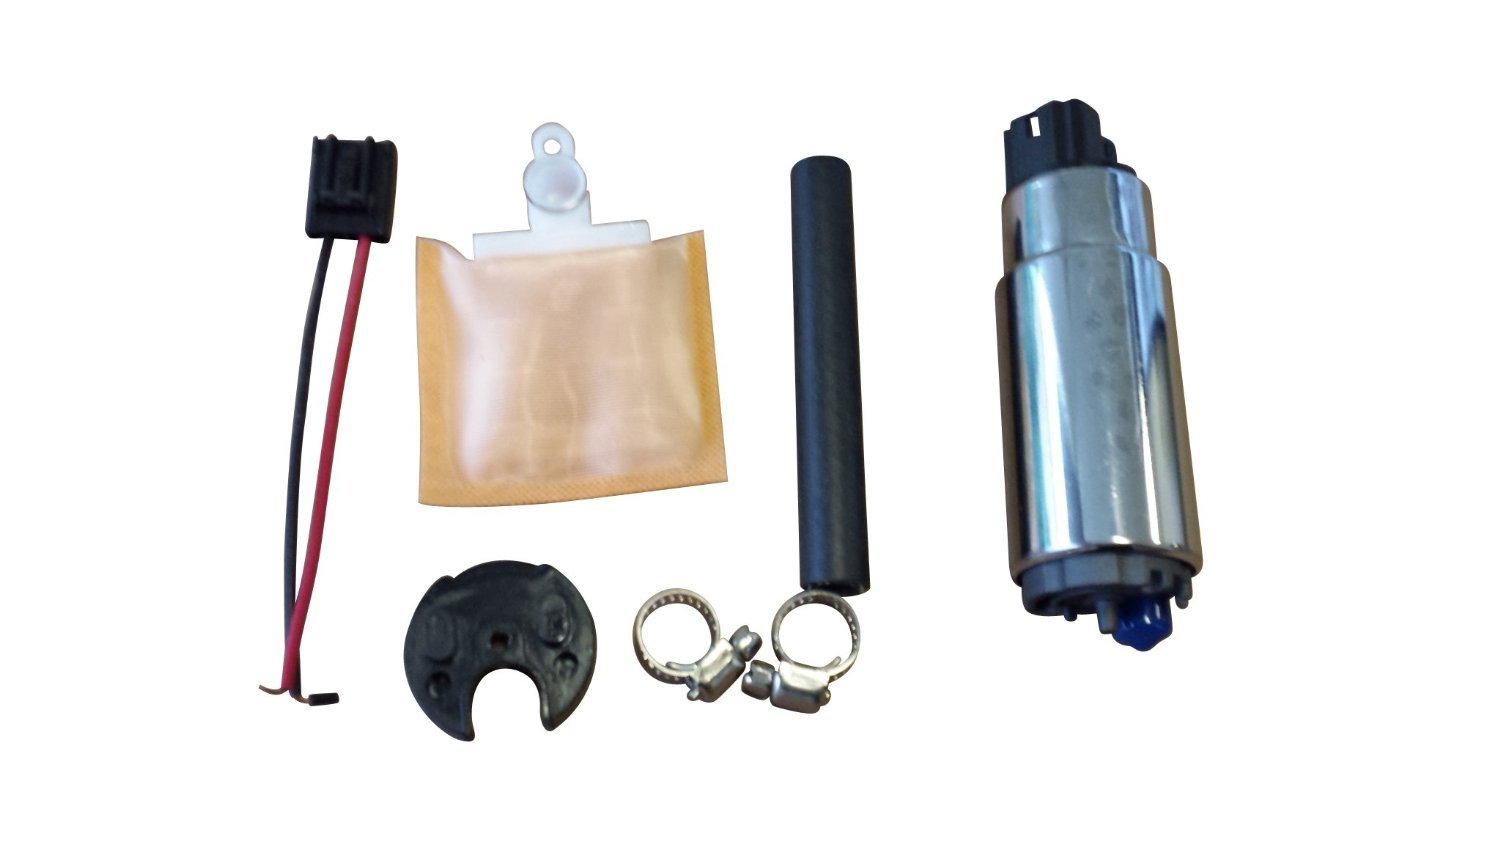 Polaris Rzr Rzrs 800 S Fuel Pump And Strainer Upgrade 2008 Jeep Wrangler Filter Kit 2009 2010 Automotive